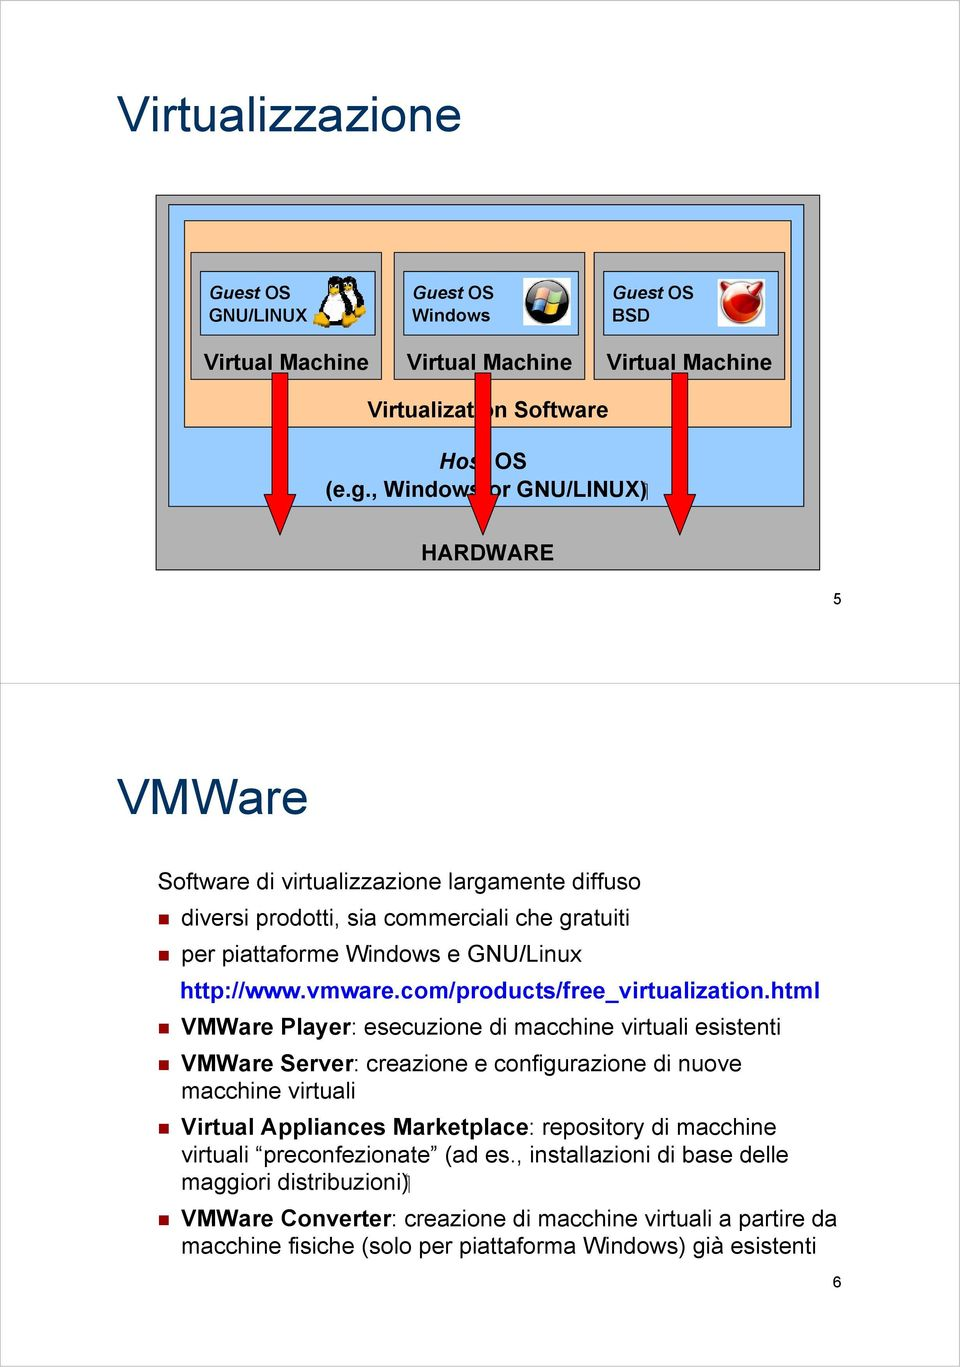 com/products/free_virtualization.